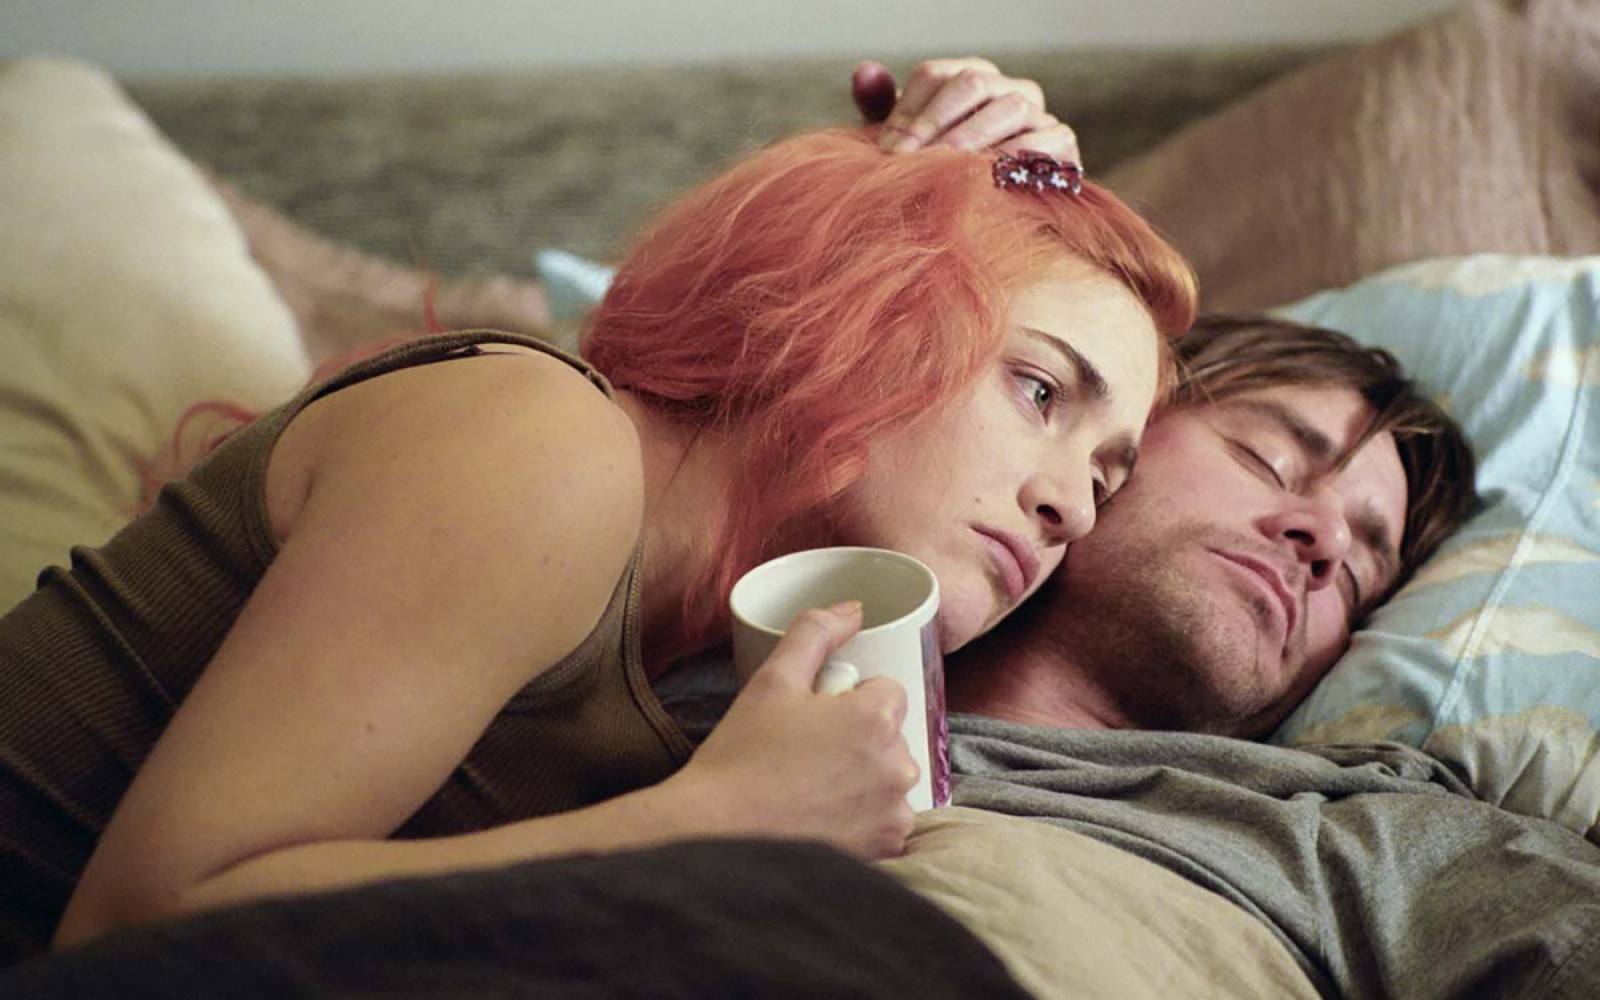 17 Quotes From 'Eternal Sunshine of the Spotless Mind' That Capture The Hopelessness Of Love